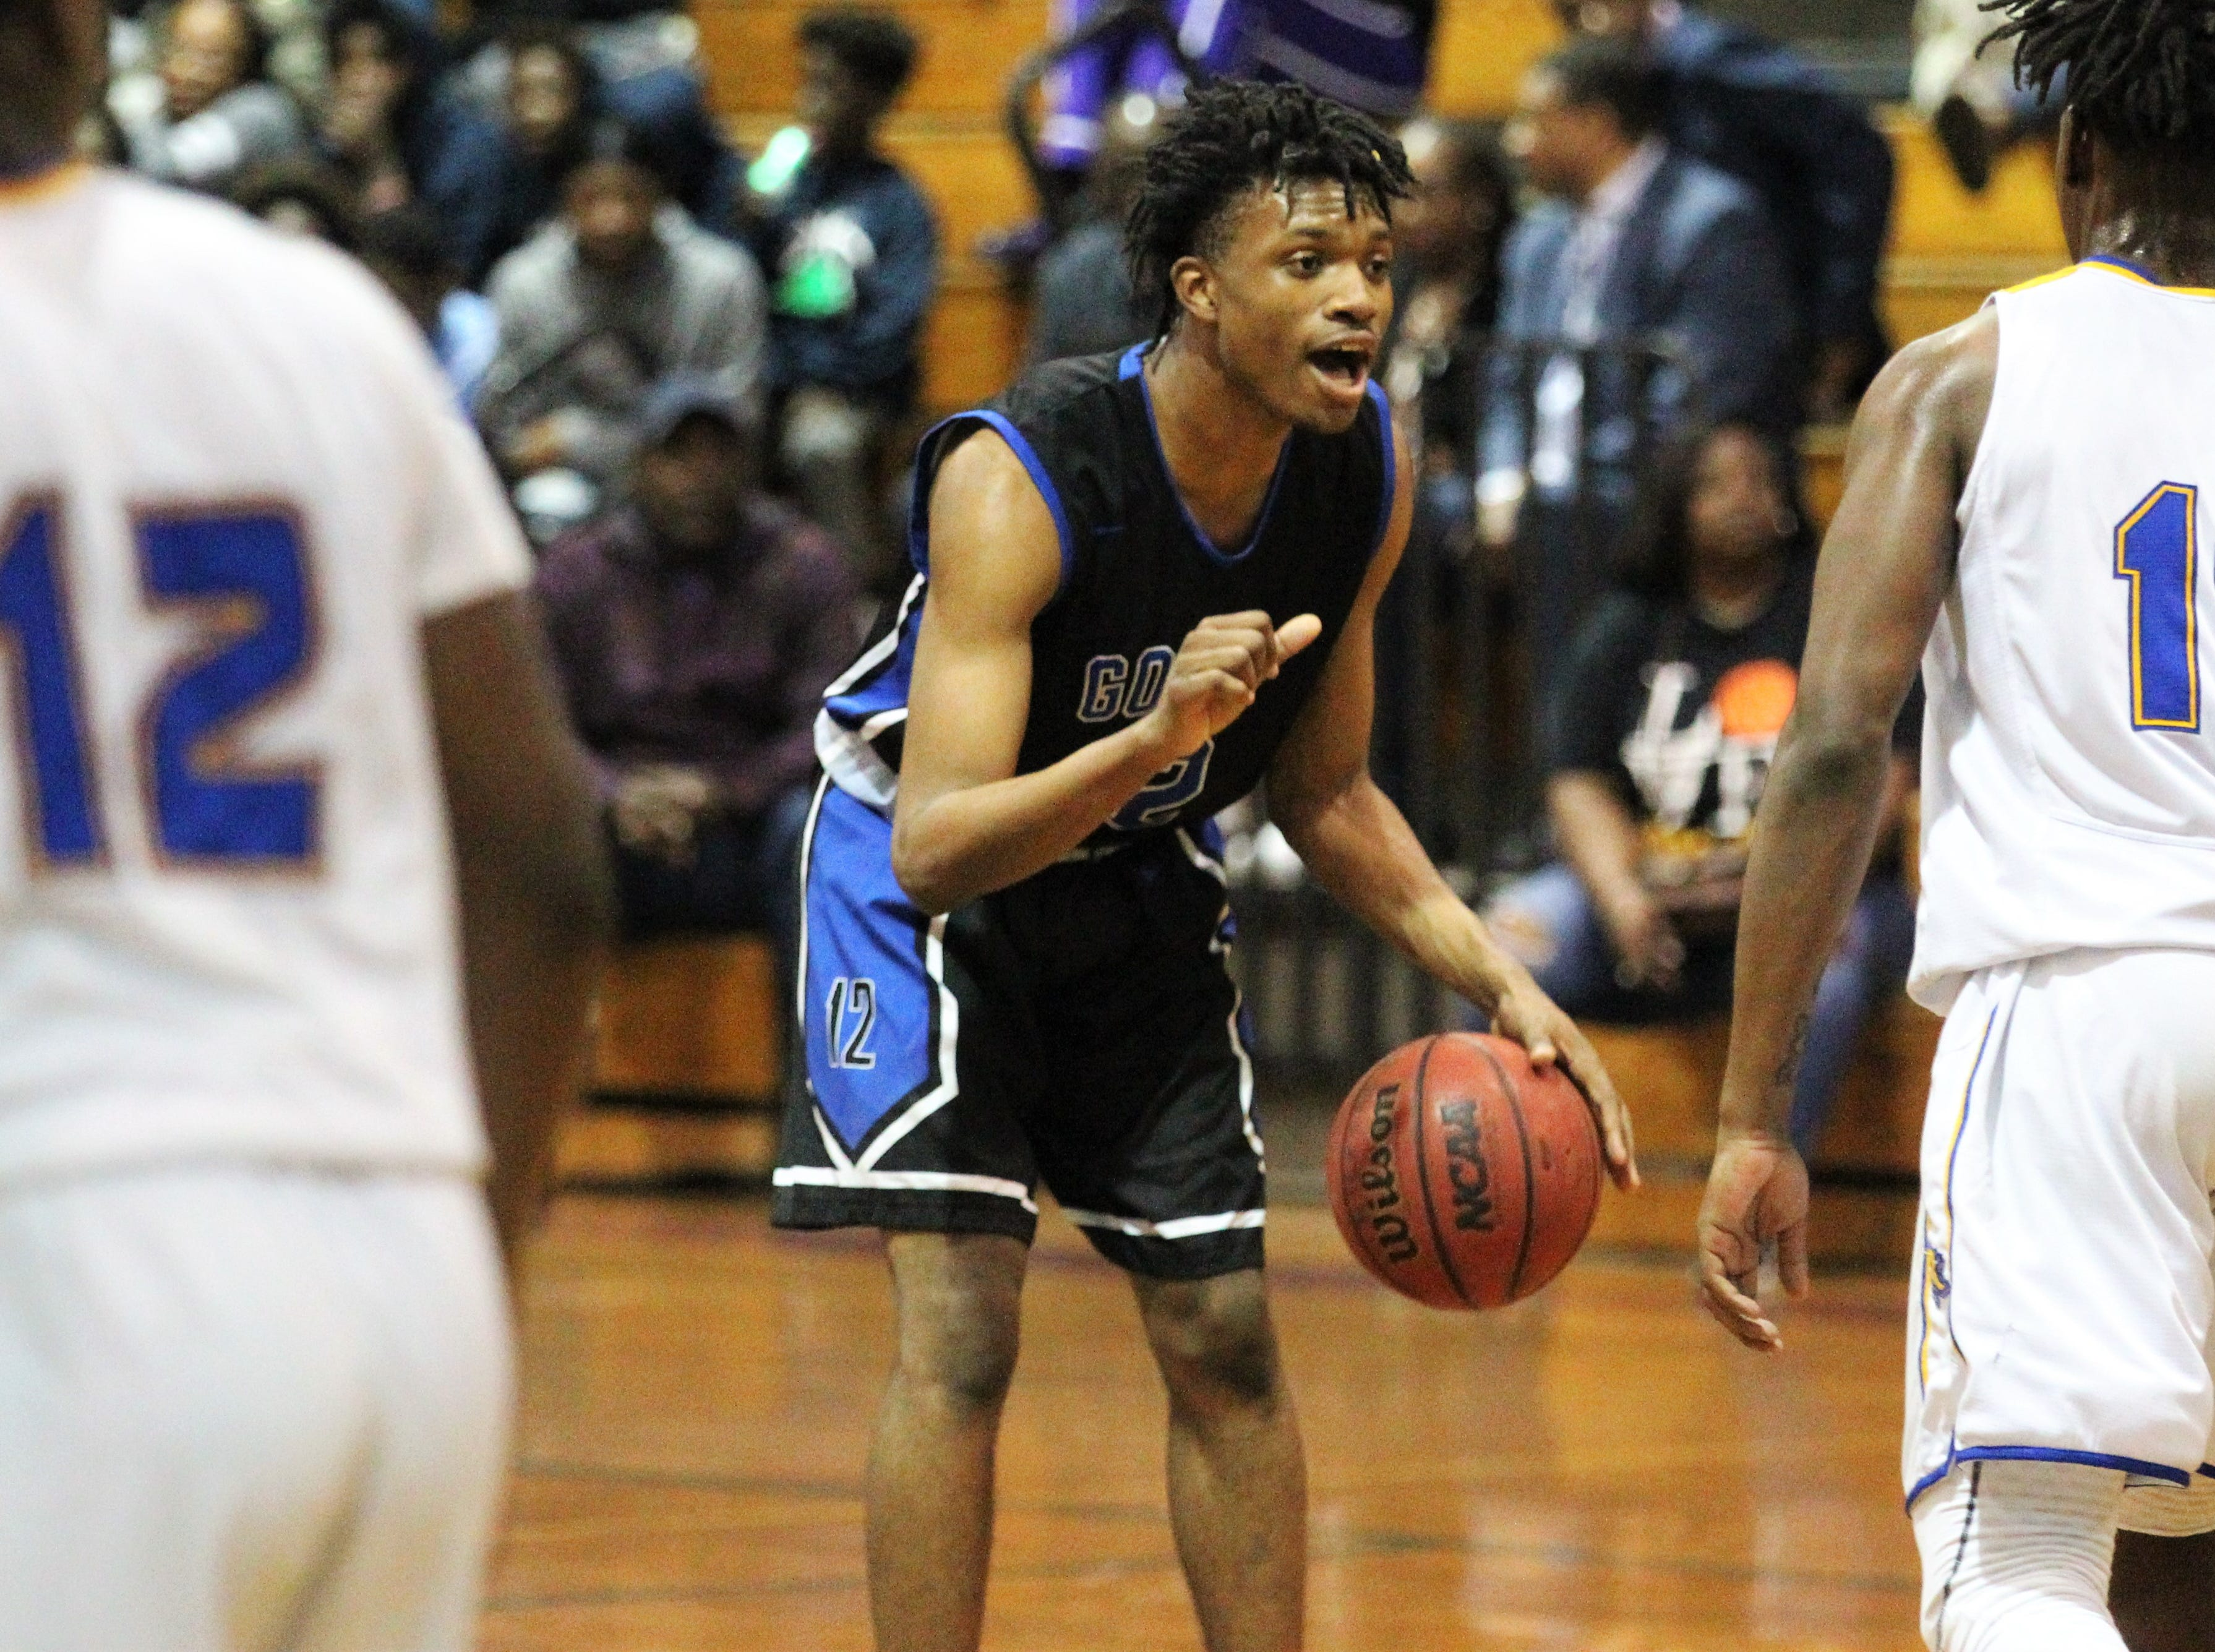 Godby's Steve Laurent calls out a play as Rickards' boys basketball team beat Godby 58-47 during a District 2-6A championship game at Chiles on Feb. 15, 2019.